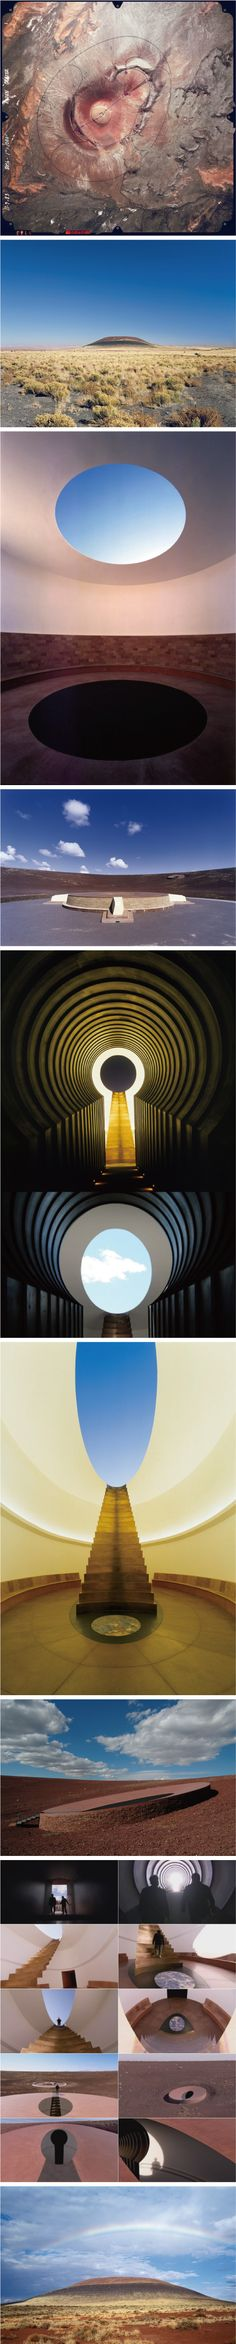 James Turrell - The Roden Crater Project